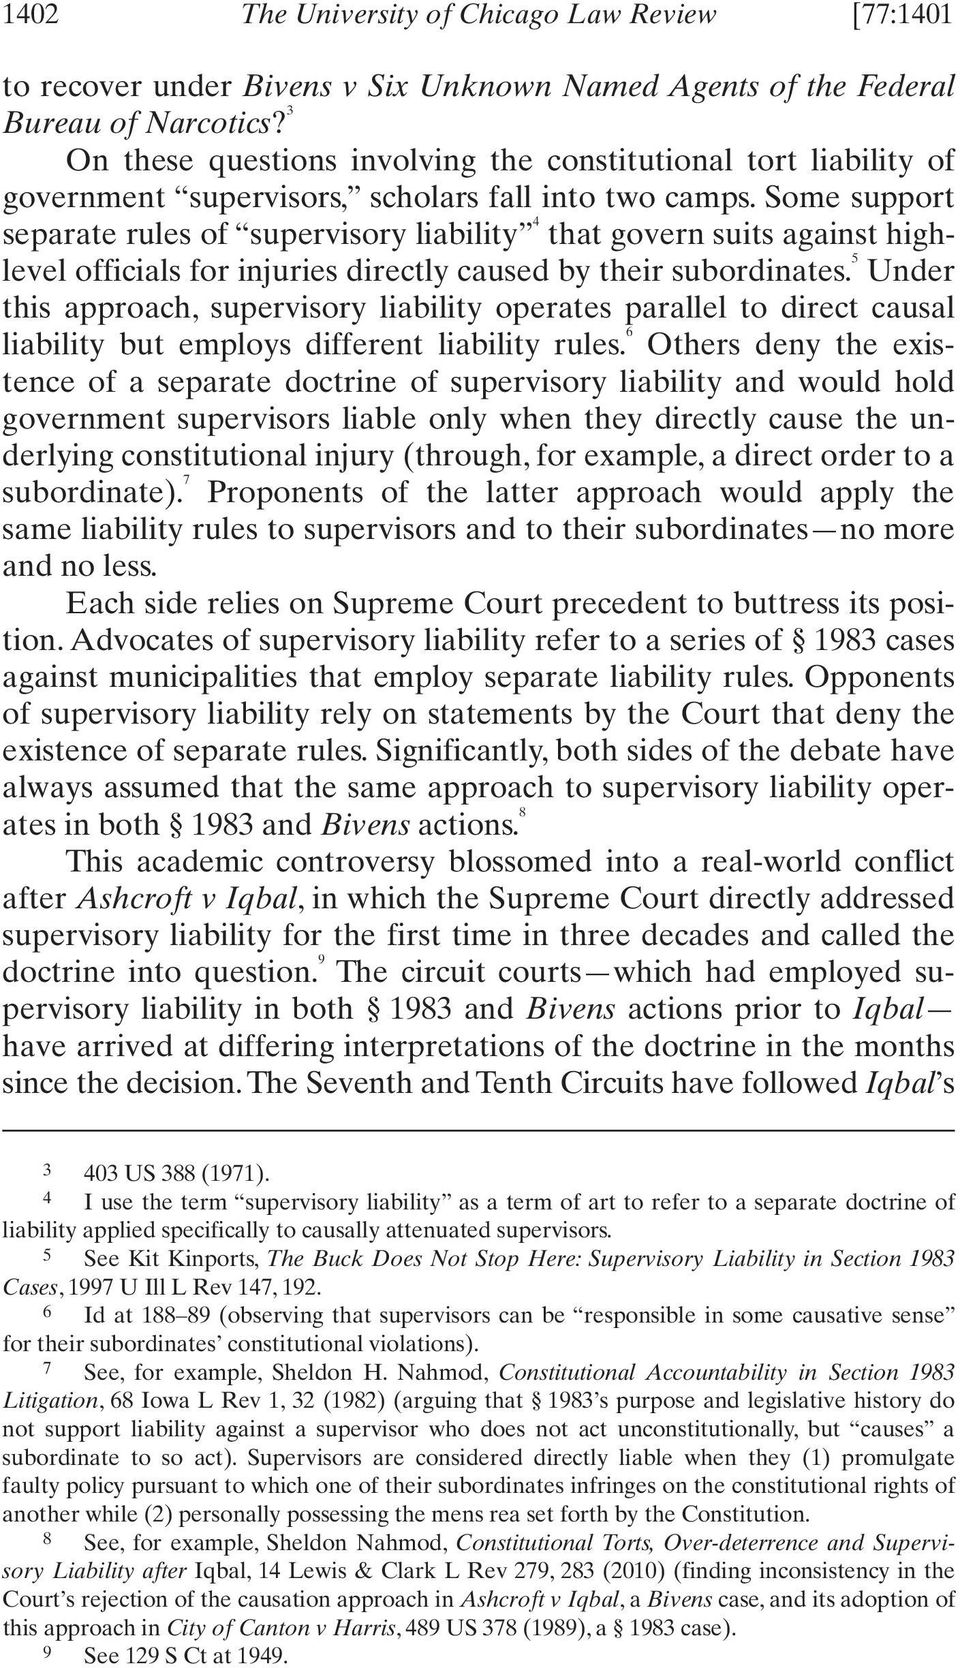 Some support separate rules of supervisory liability 4 that govern suits against highlevel officials for injuries directly caused by their subordinates.